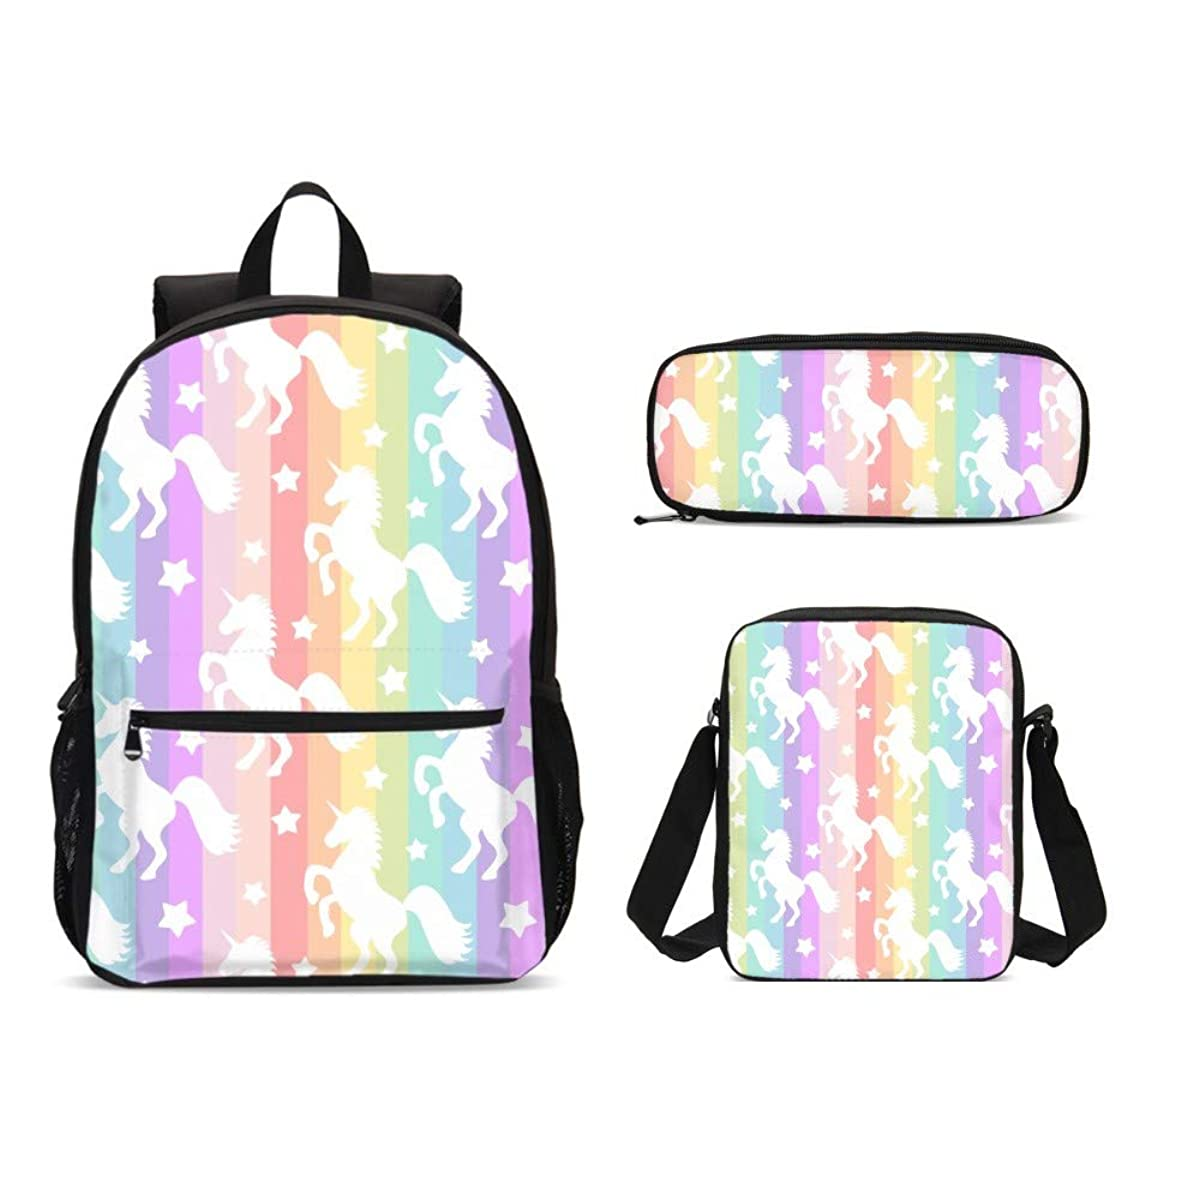 Delerain Rainbow Unicorn 3 PCs Backpack Set for Kids Back to School Bookbag with Shouder Bag and Pencil Case Durable Lightweight Travel Laptop for Teens Students Boys Girls